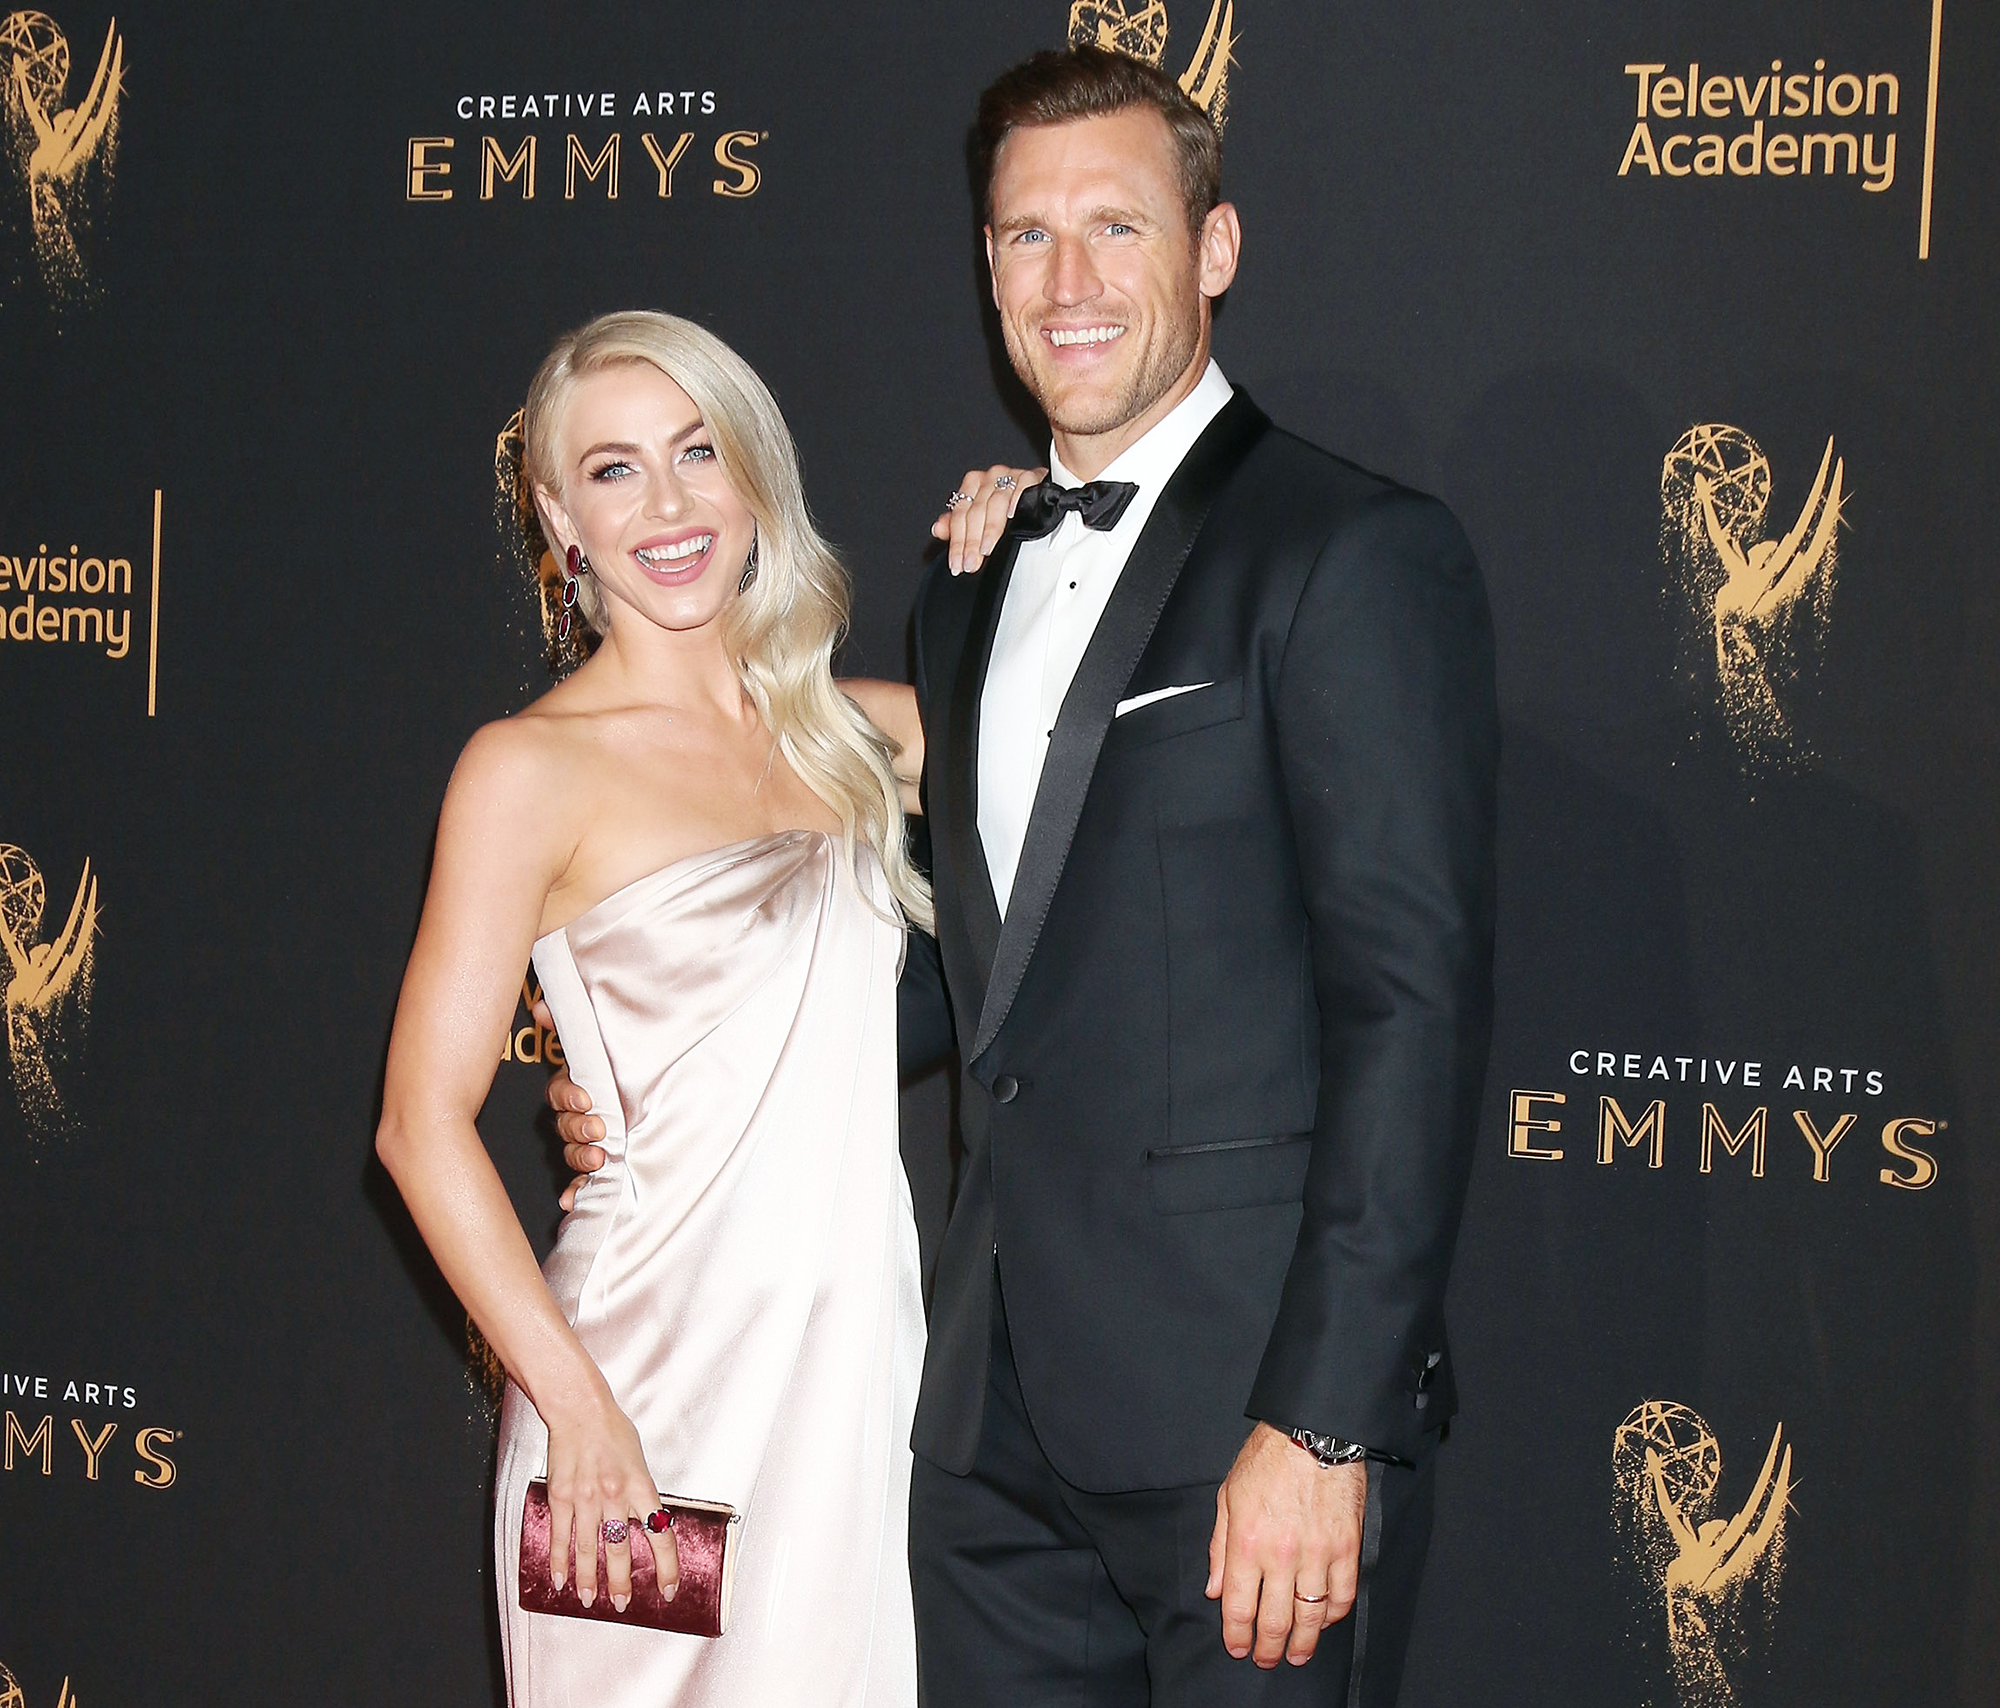 Brooks Laich Did Not Want a Divorce But Julianne Hough Actions Led to Their Split